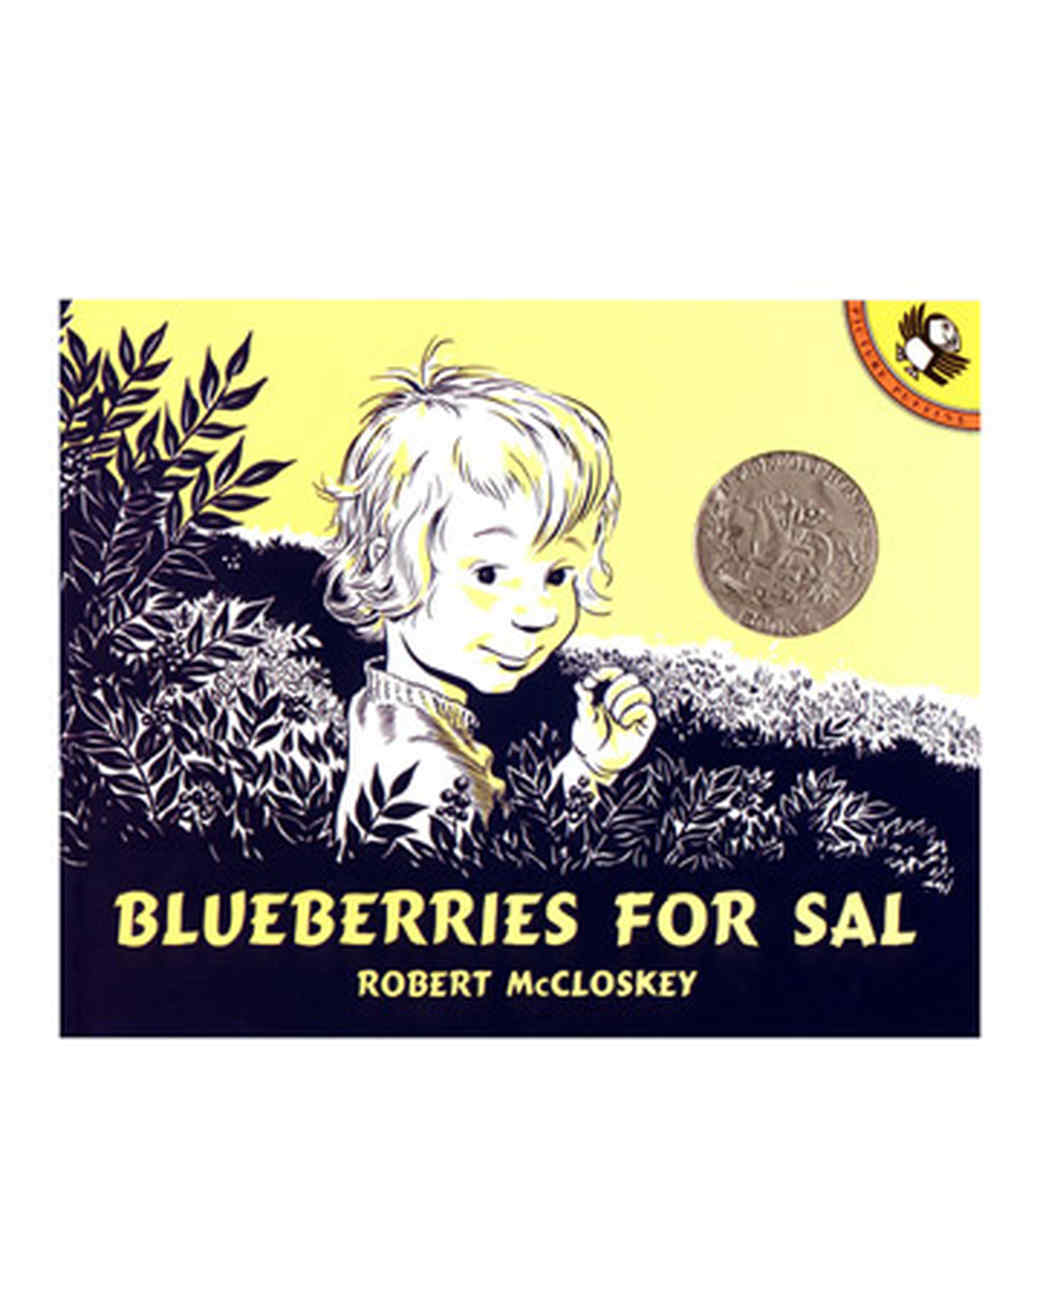 blueberries_for_salback_to_school.jpg